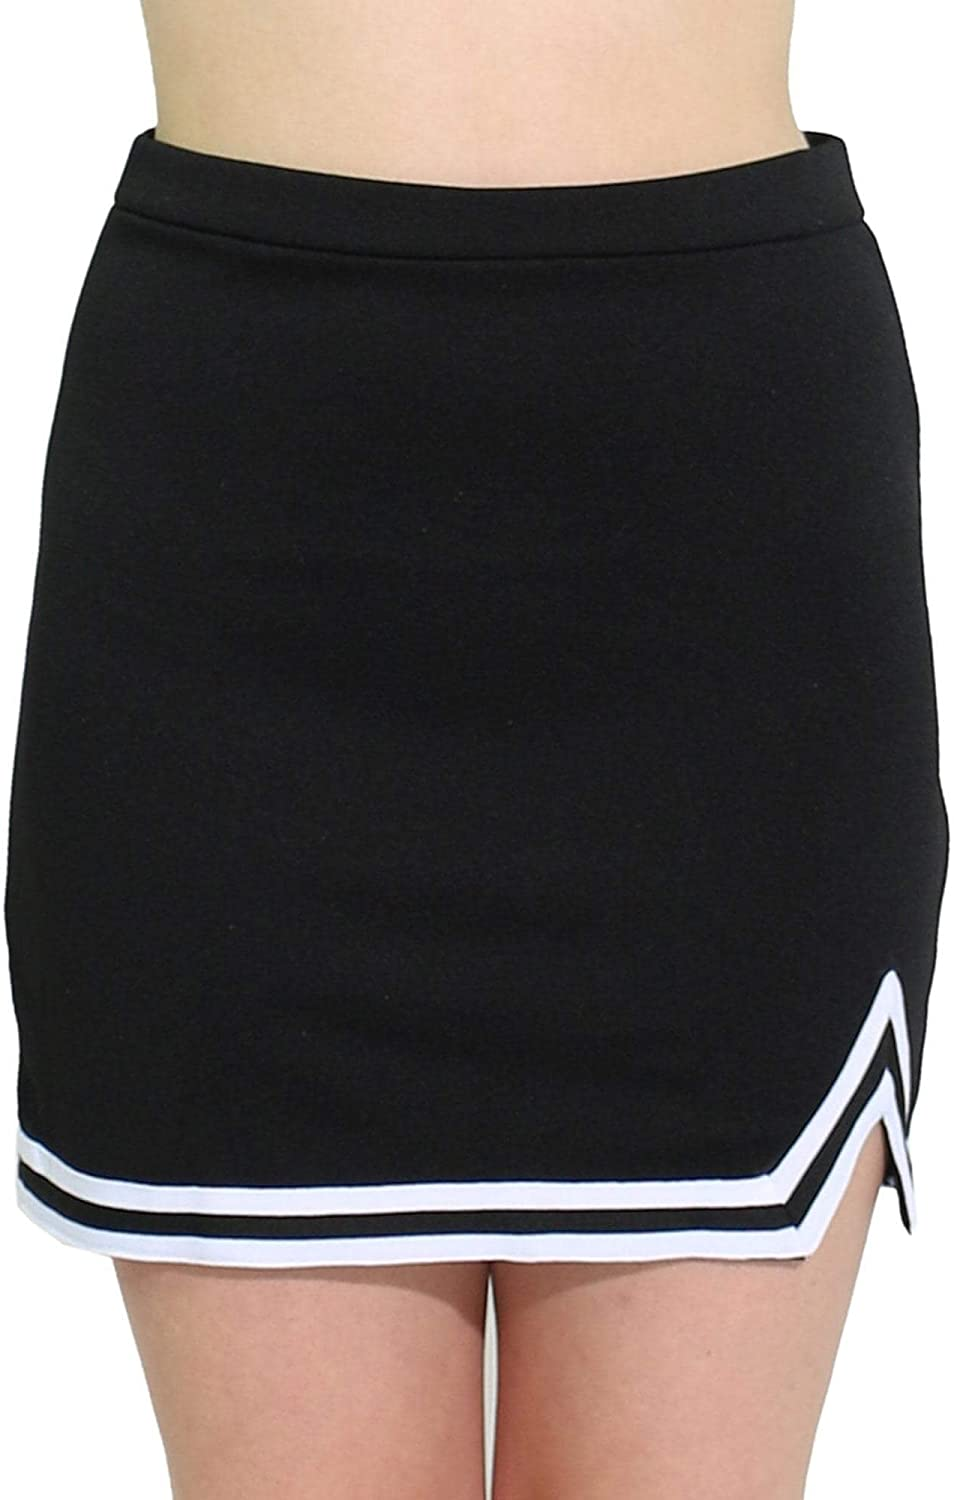 Danzcue Womens Big Kid Double New mail order A-Line Uniform Skirt Cheer Spasm price V